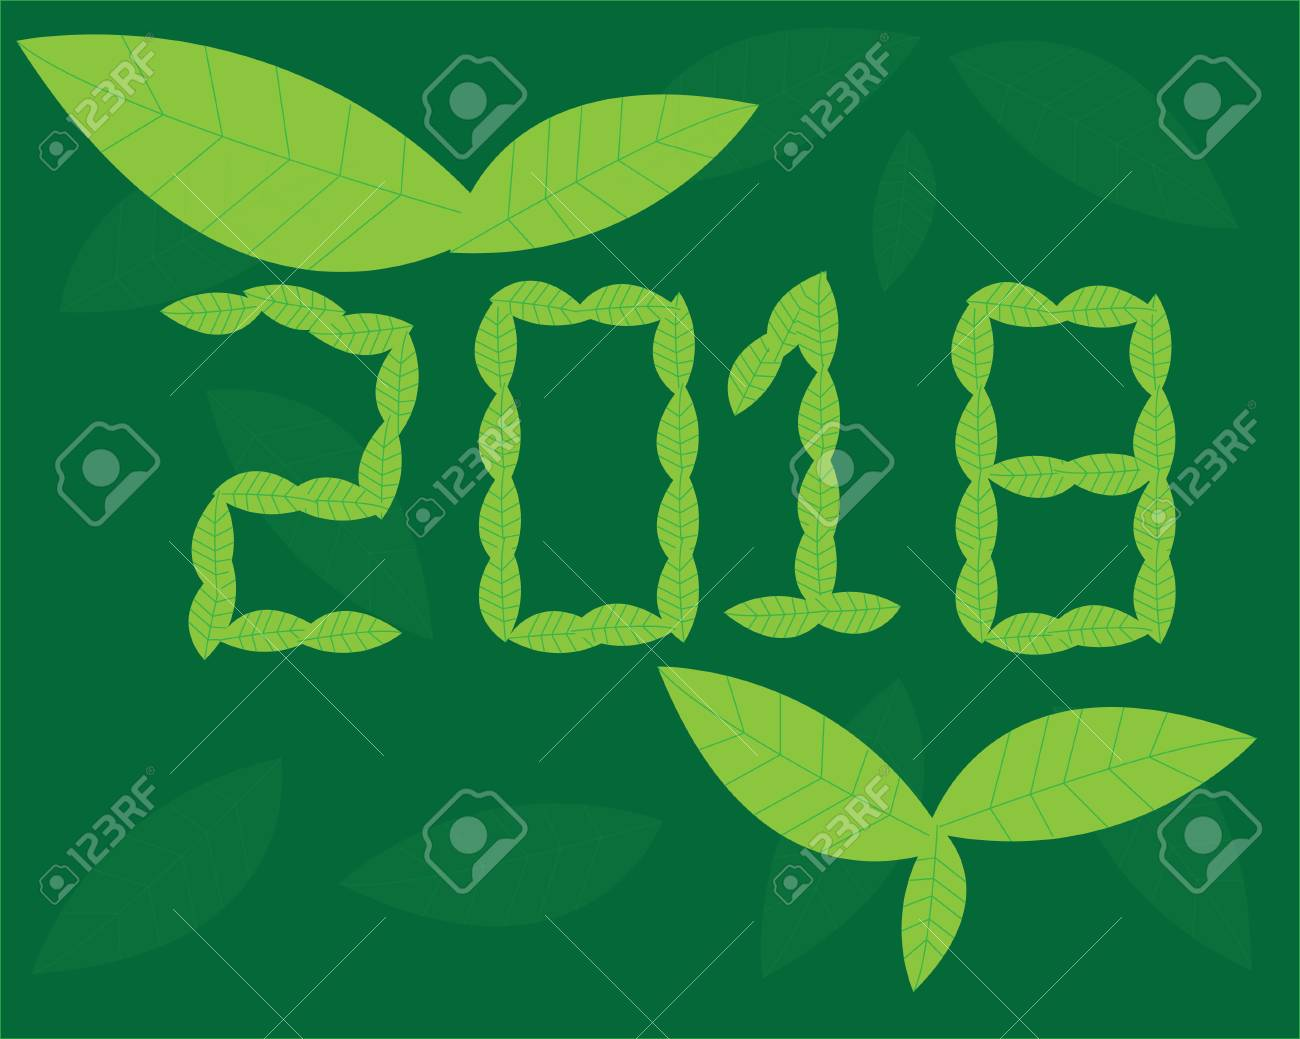 happy new year 2018 on green background stock vector 88030898